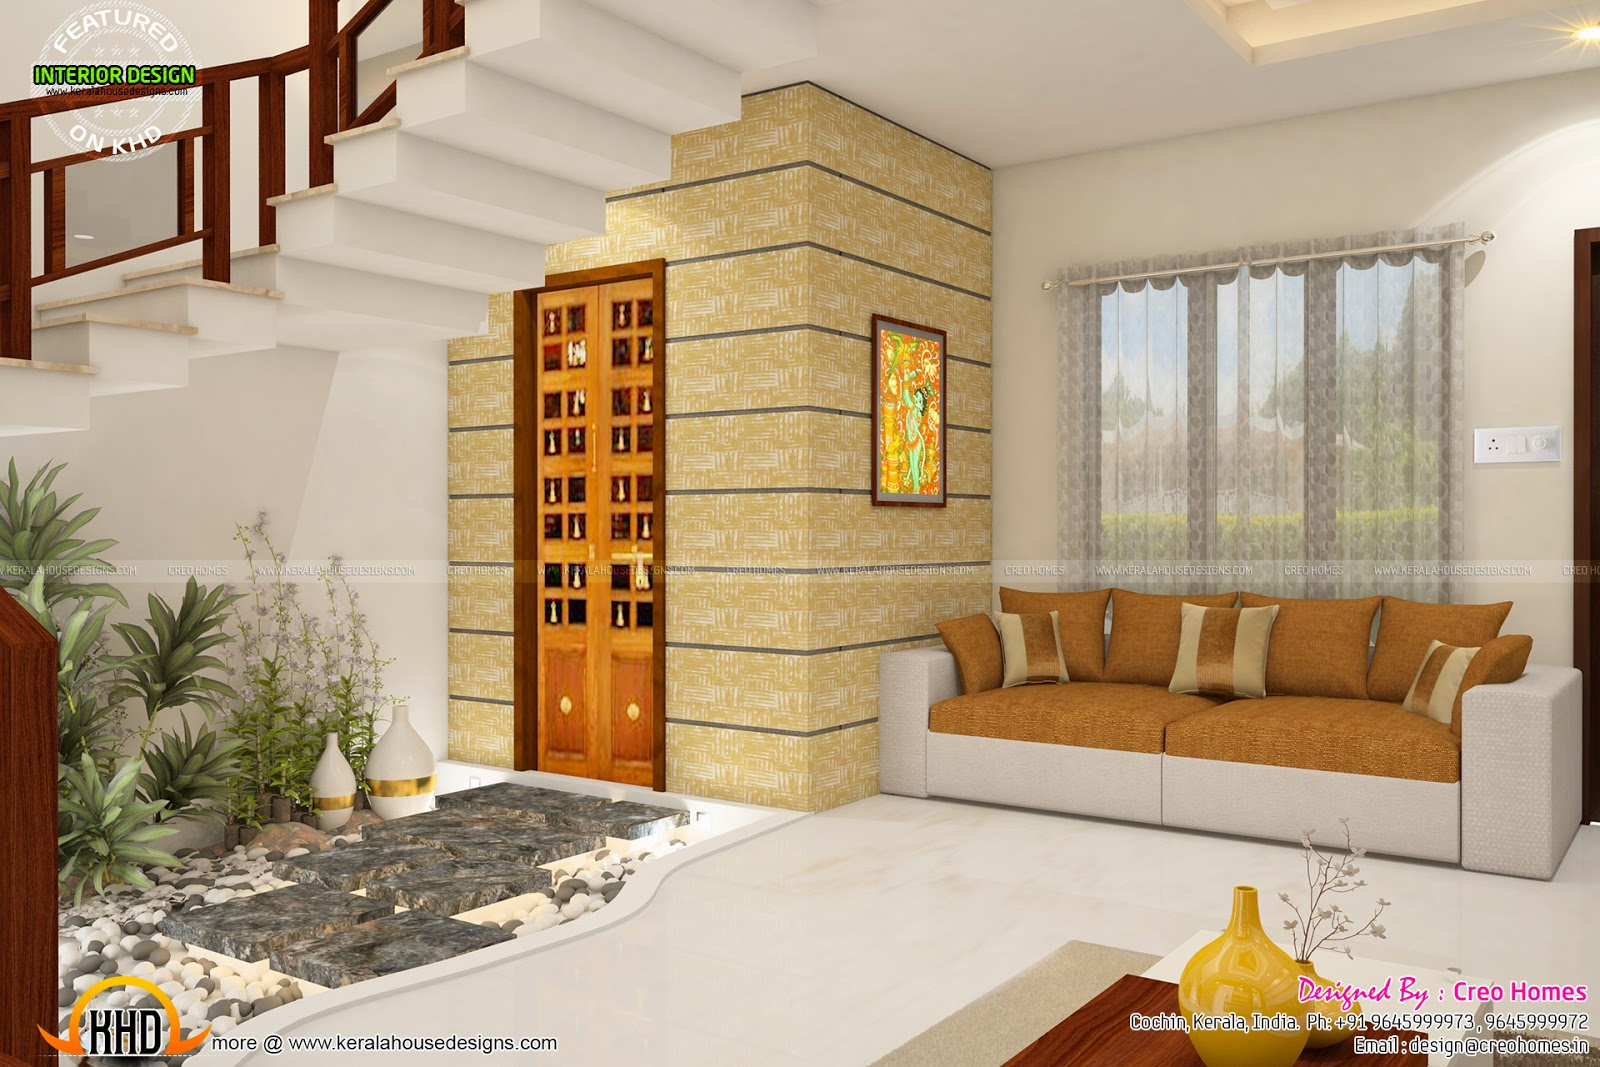 Total home interior solutions by creo homes kerala home for House home decorating